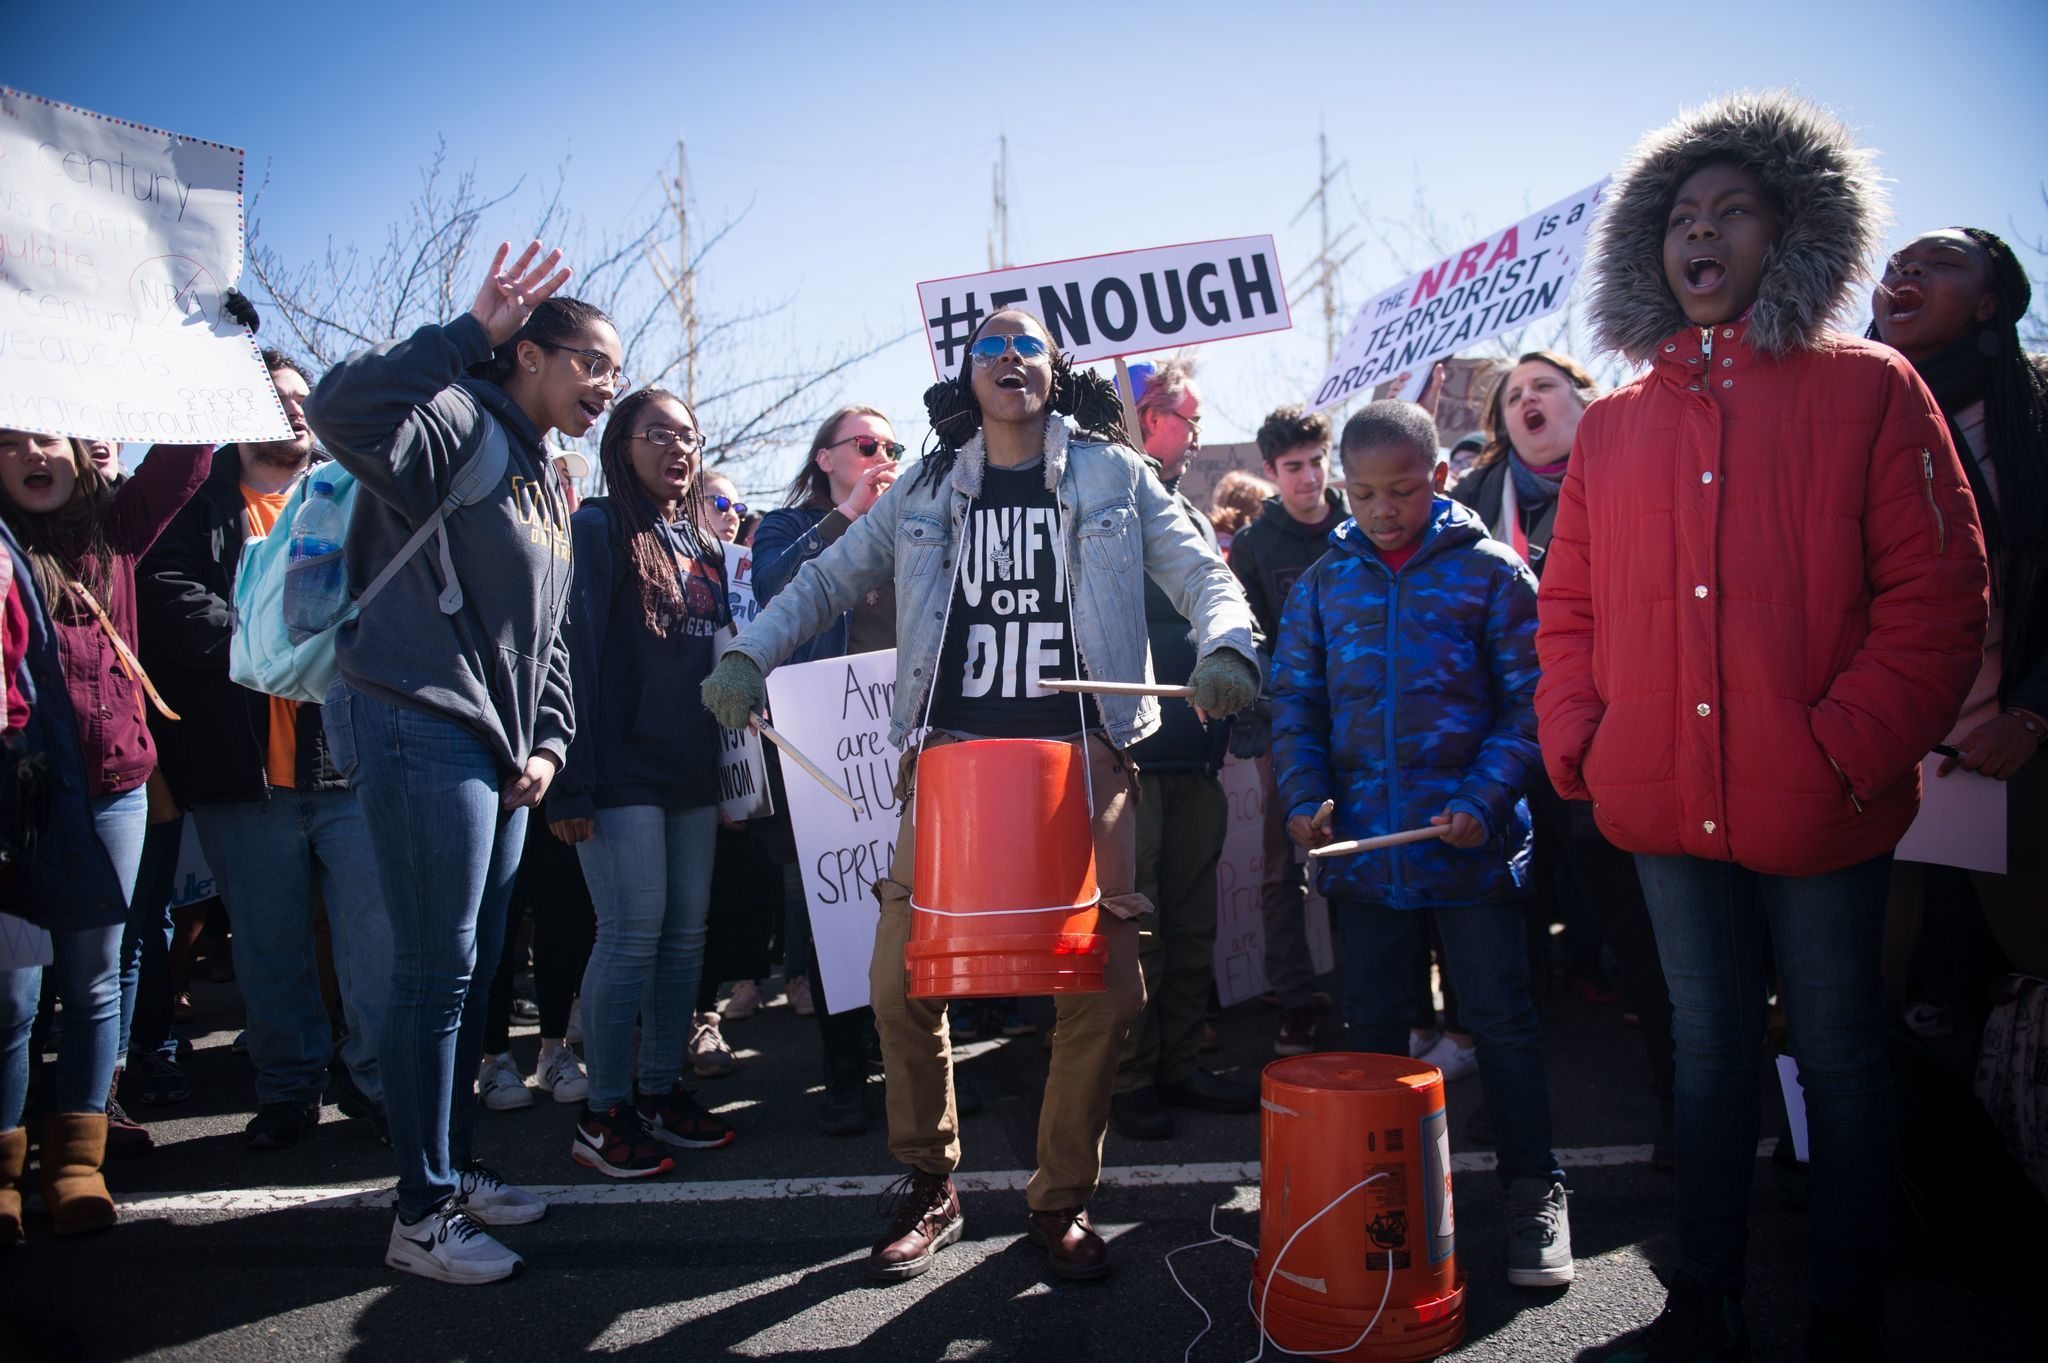 March For Our Lives in Philadelphia, USA - 24 Mar 2018